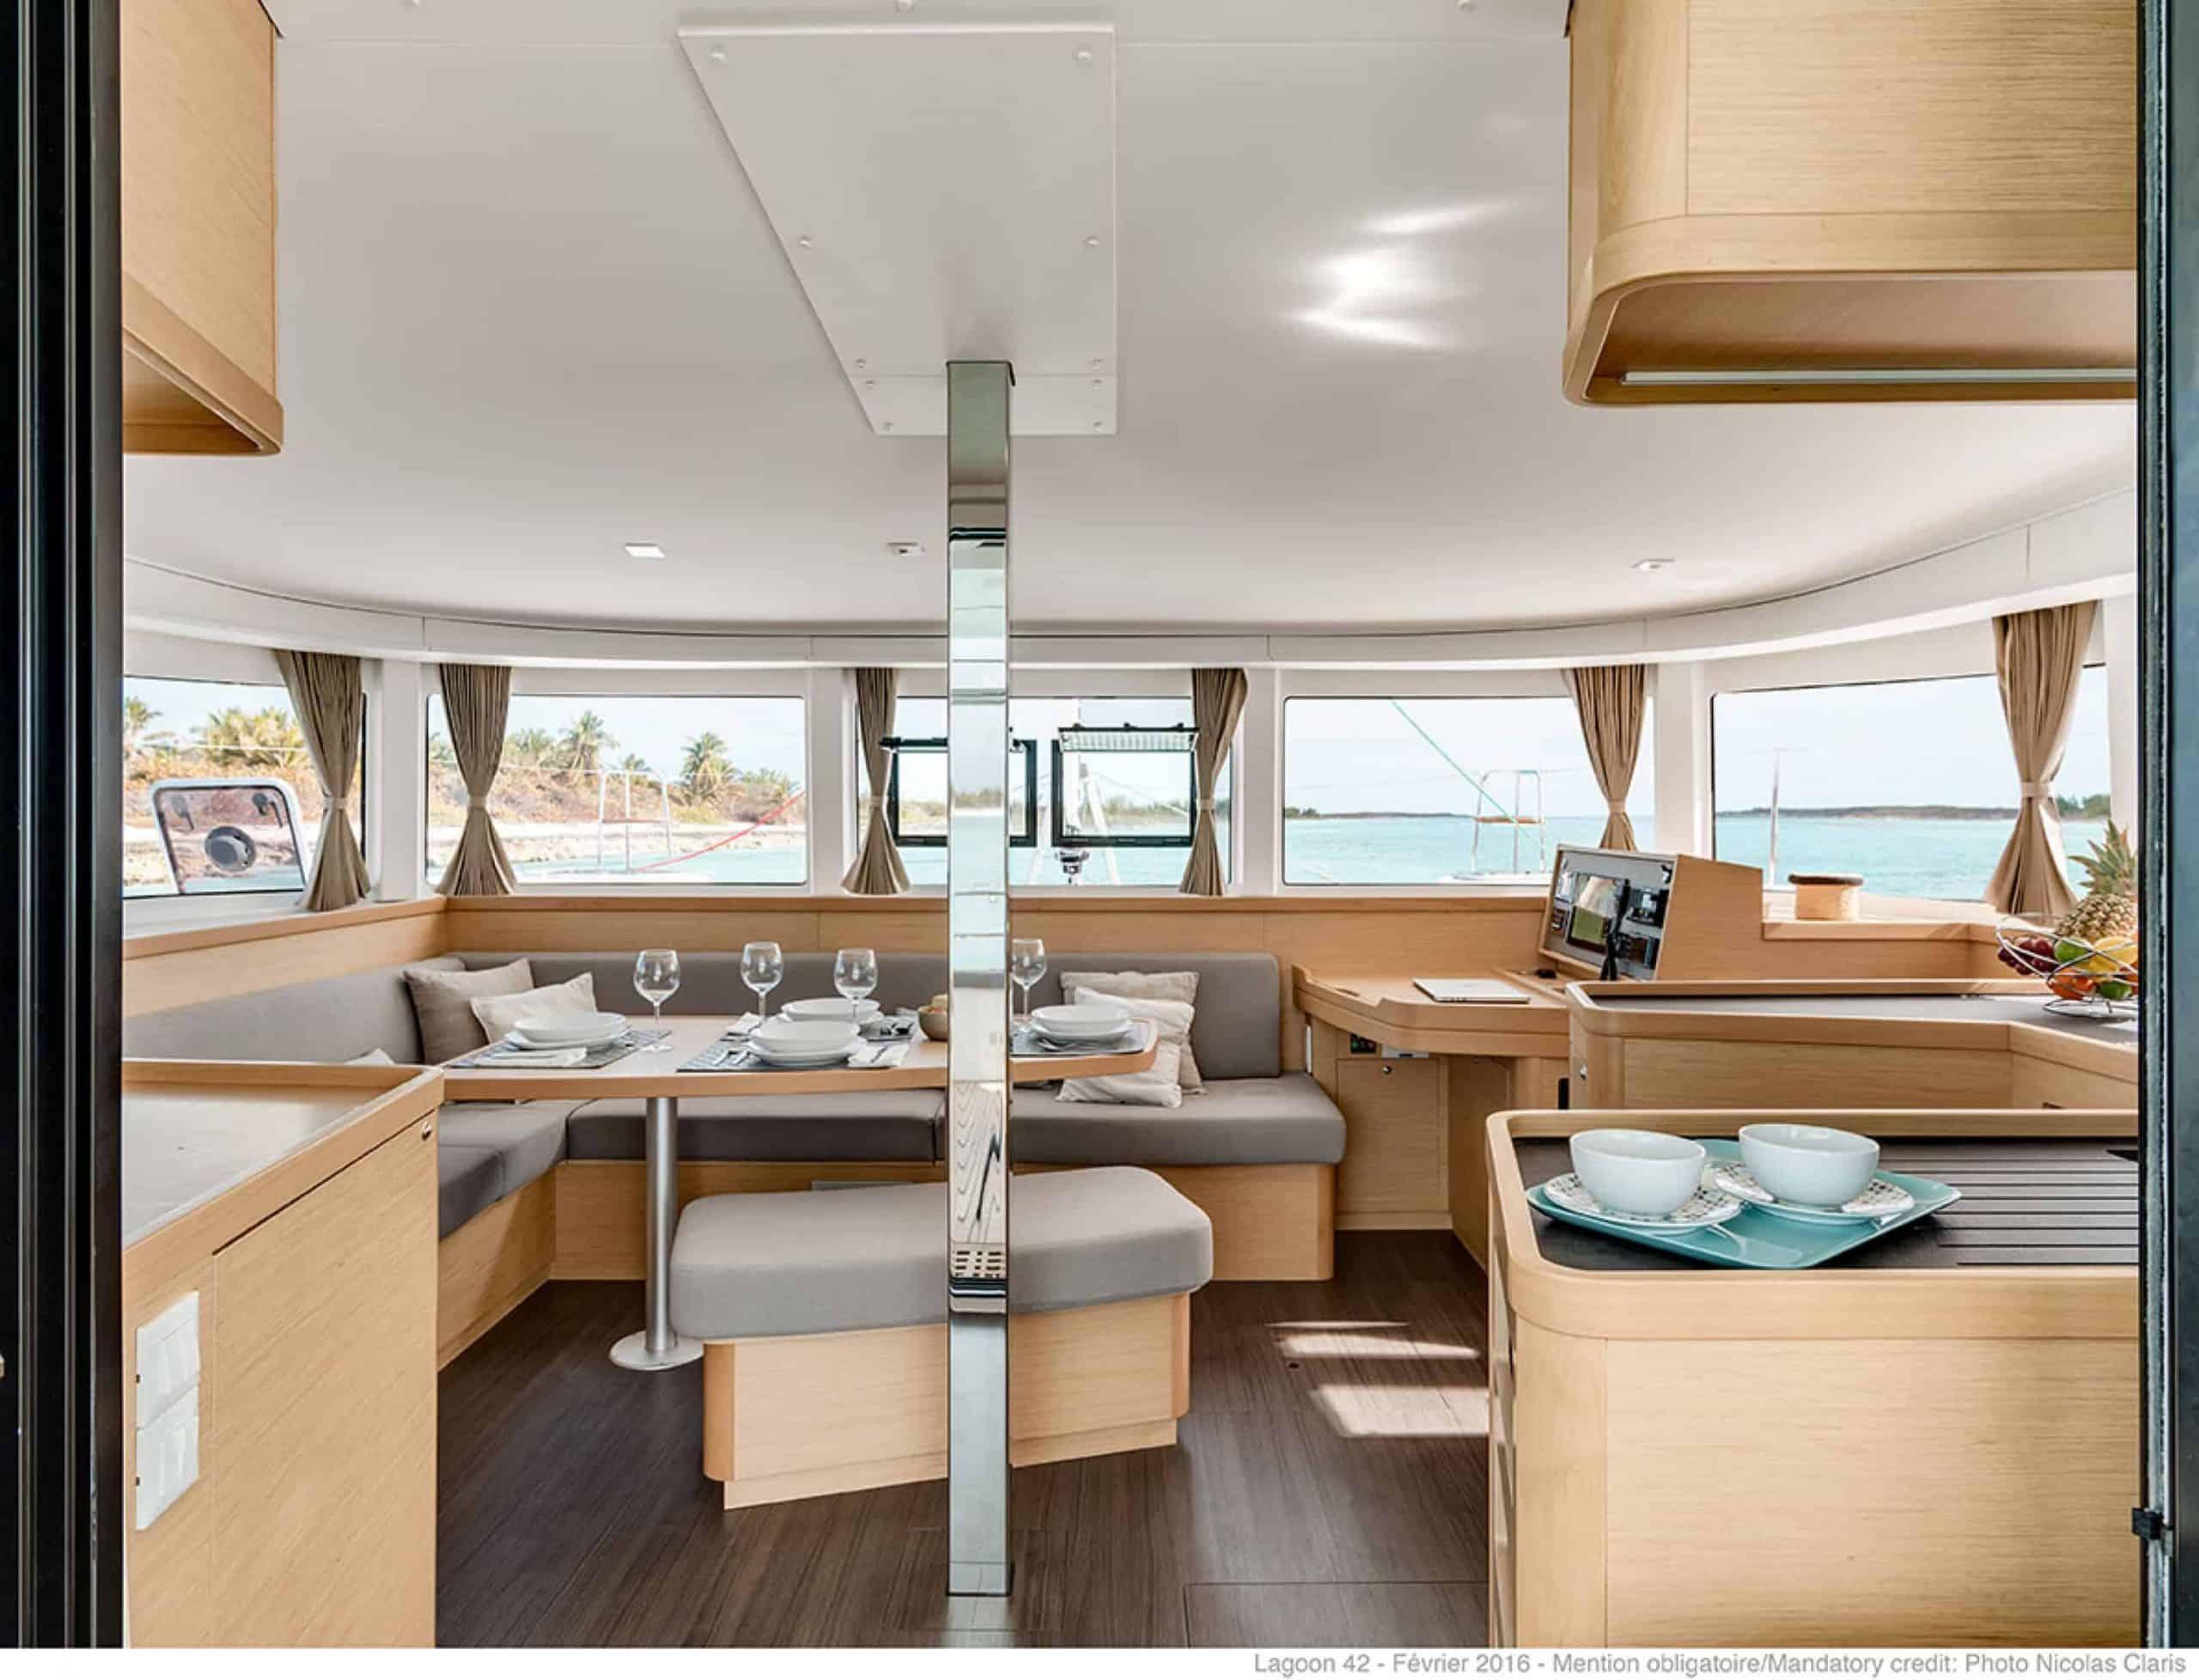 Spacious and luxurious saloon of the lagoon 42